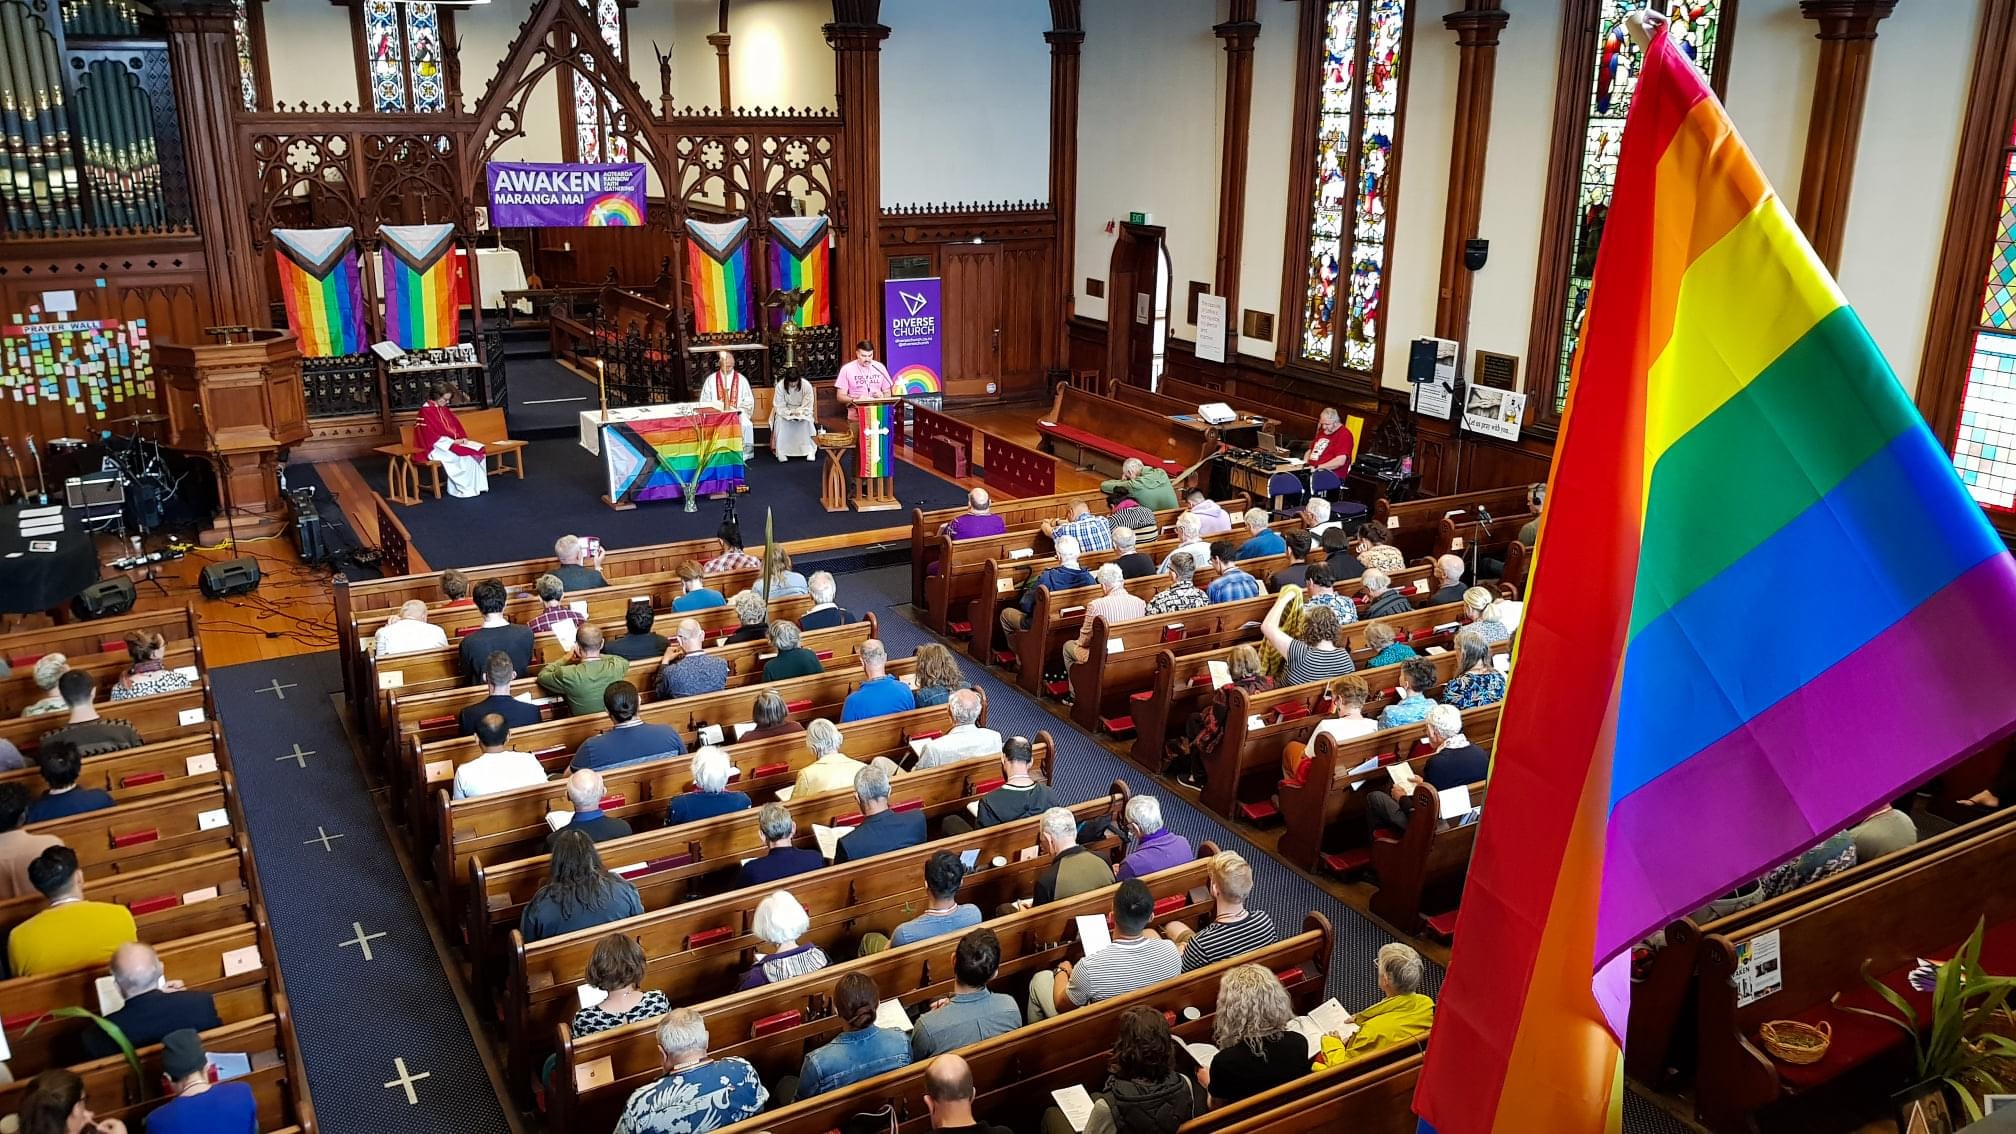 A rainbow flag is in foreground with people in pews at church.